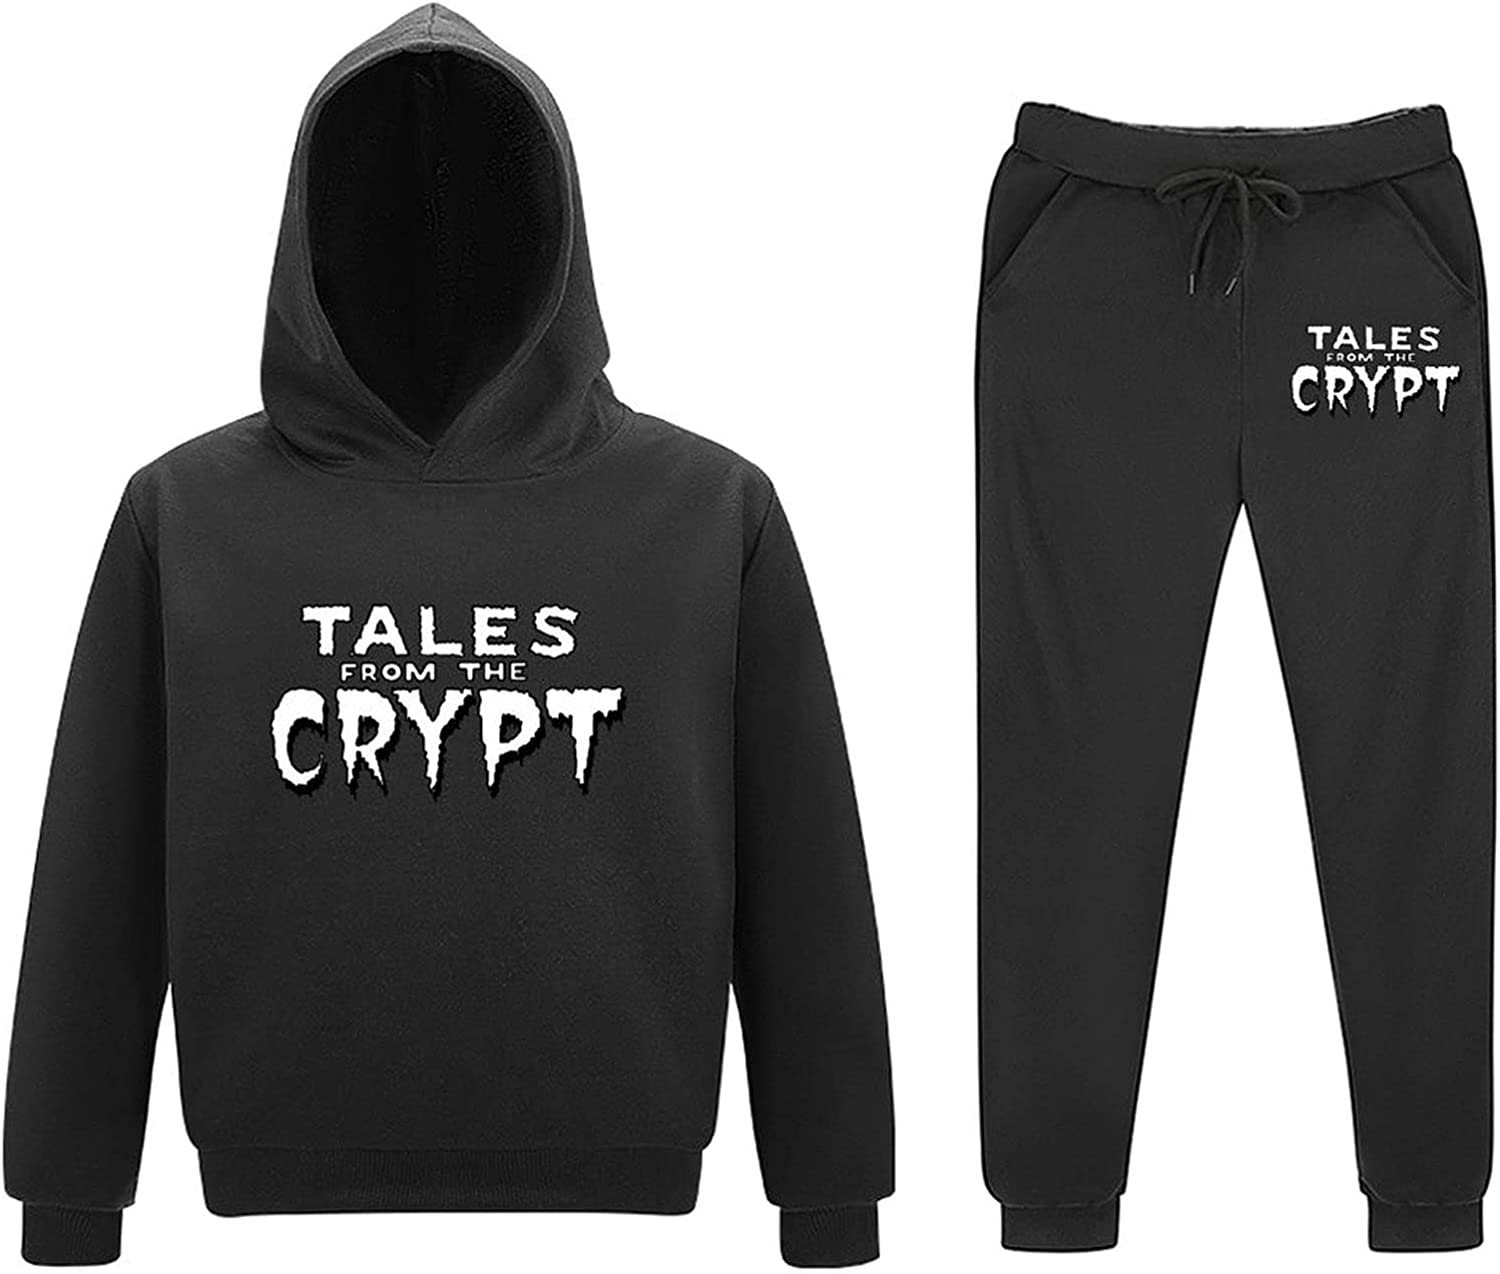 5-11Y Tal-es from The Crypt Little Sweatsuits Recommended Girls At the price of surprise 2 Boy Piece